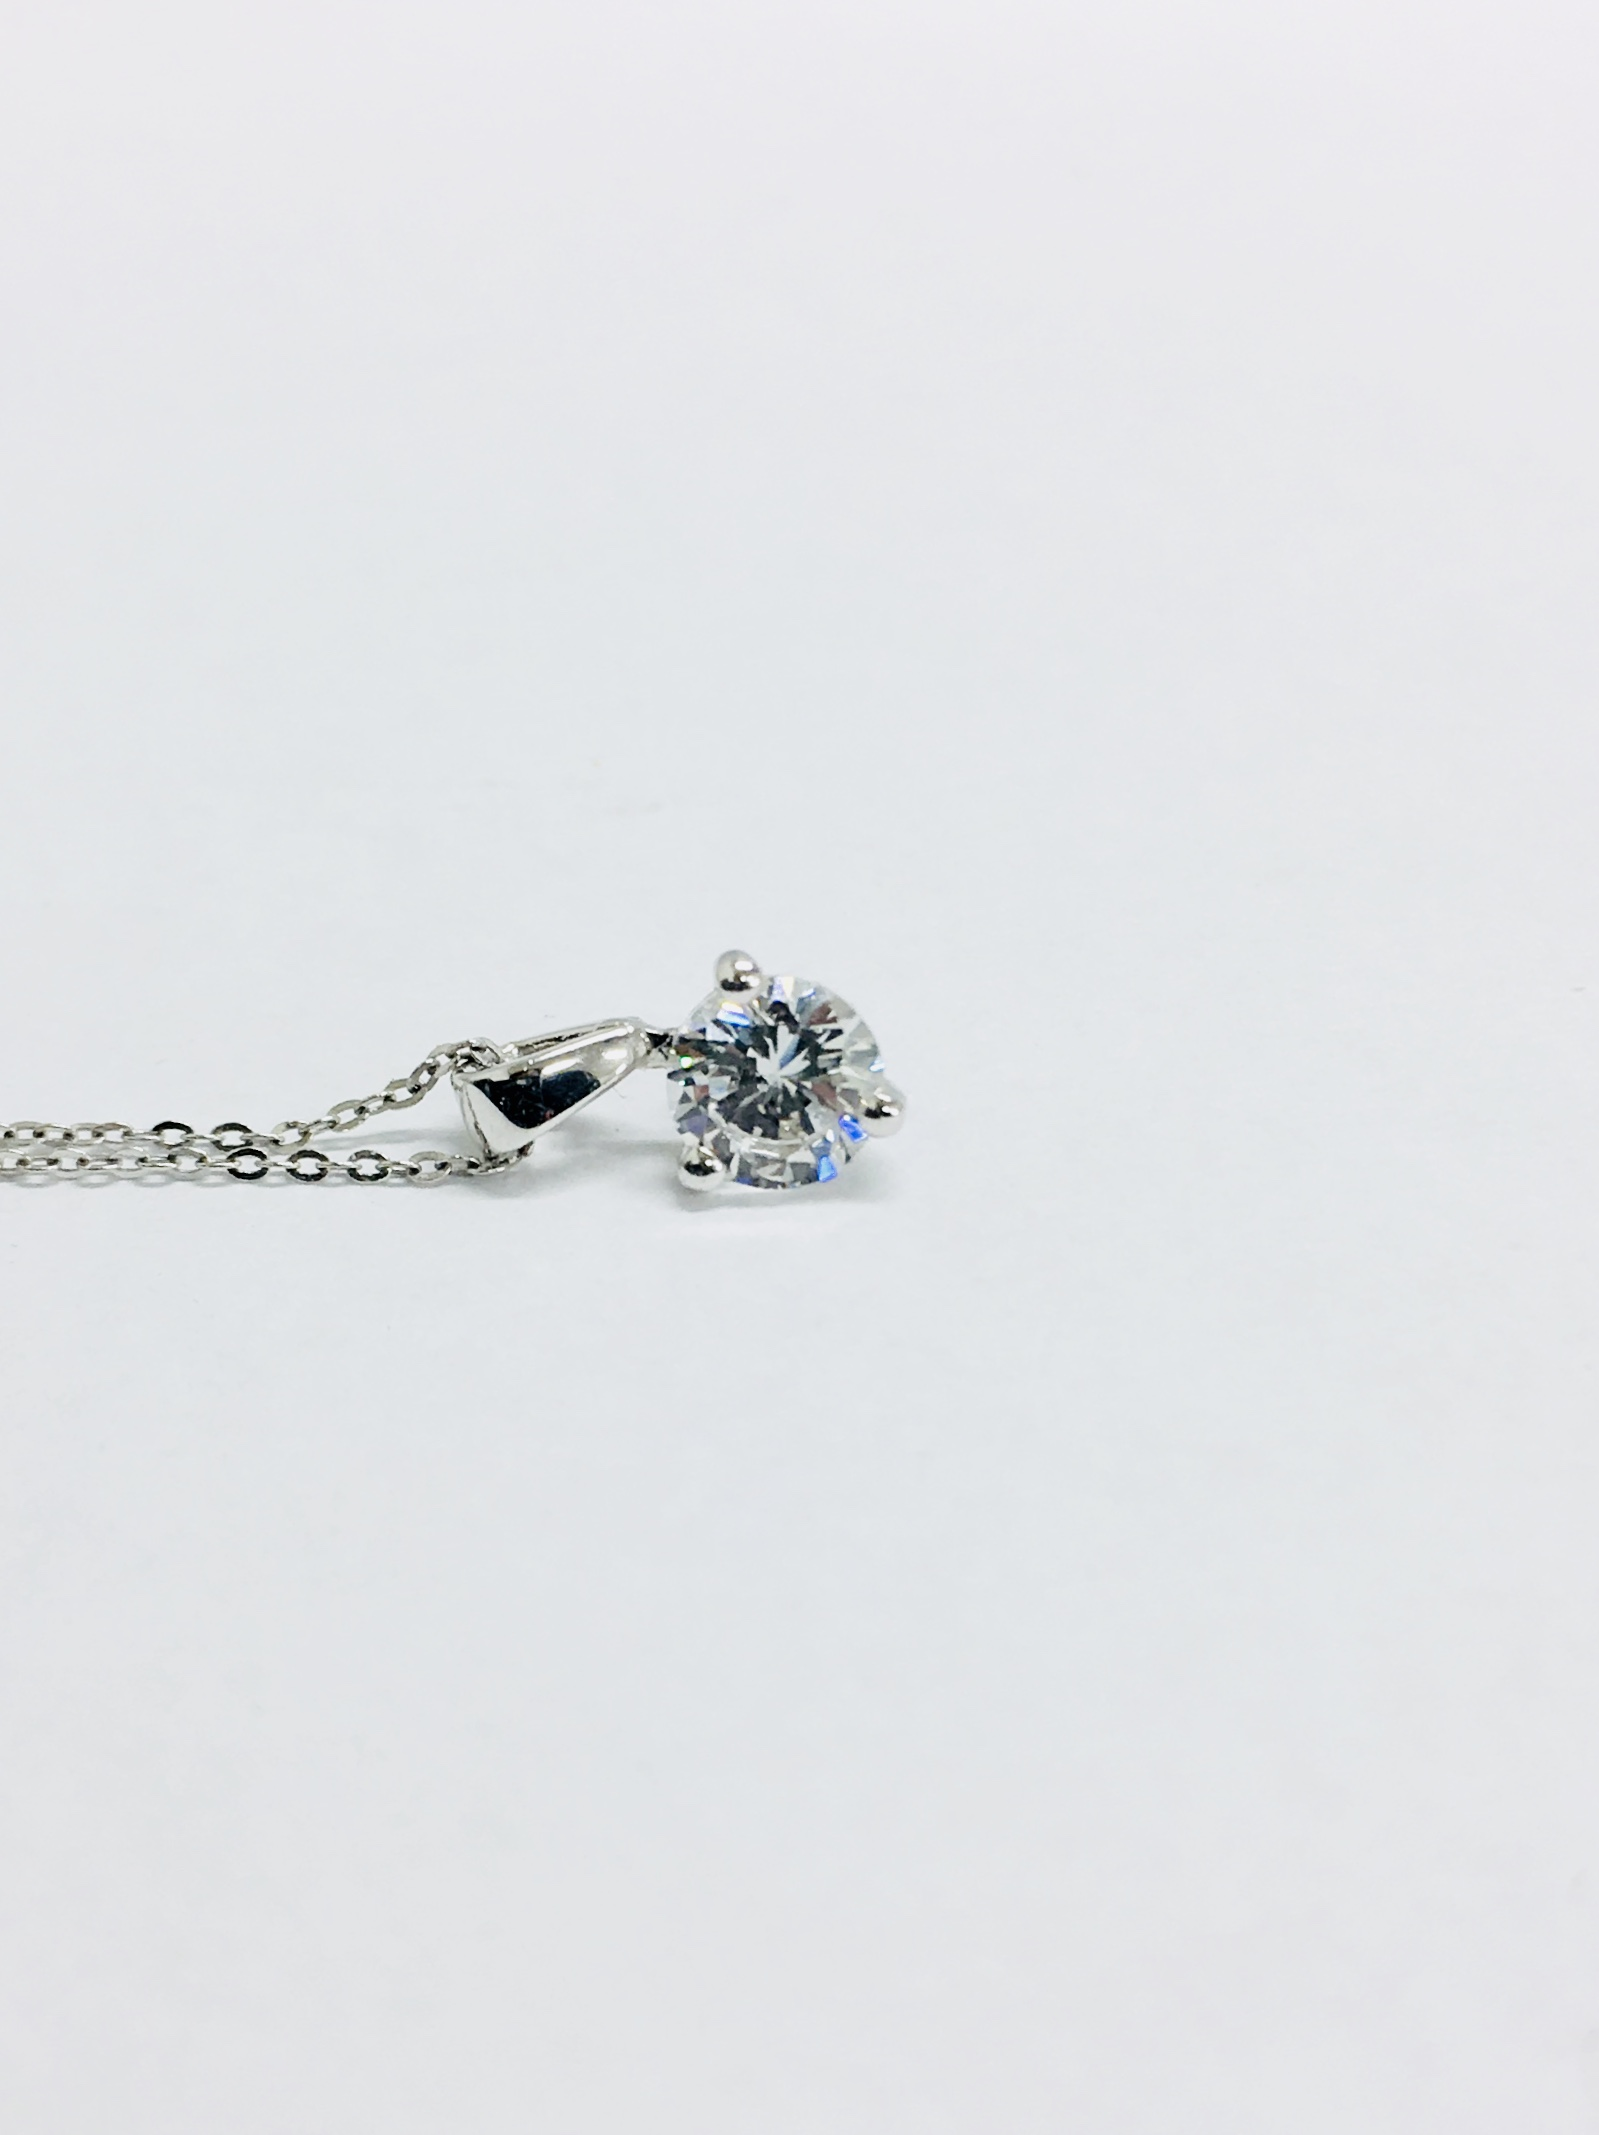 Lot 58 - 0.25ct diamond solitaire pendant set in 18ct gold. Brilliant cut diamond, I colour and si3